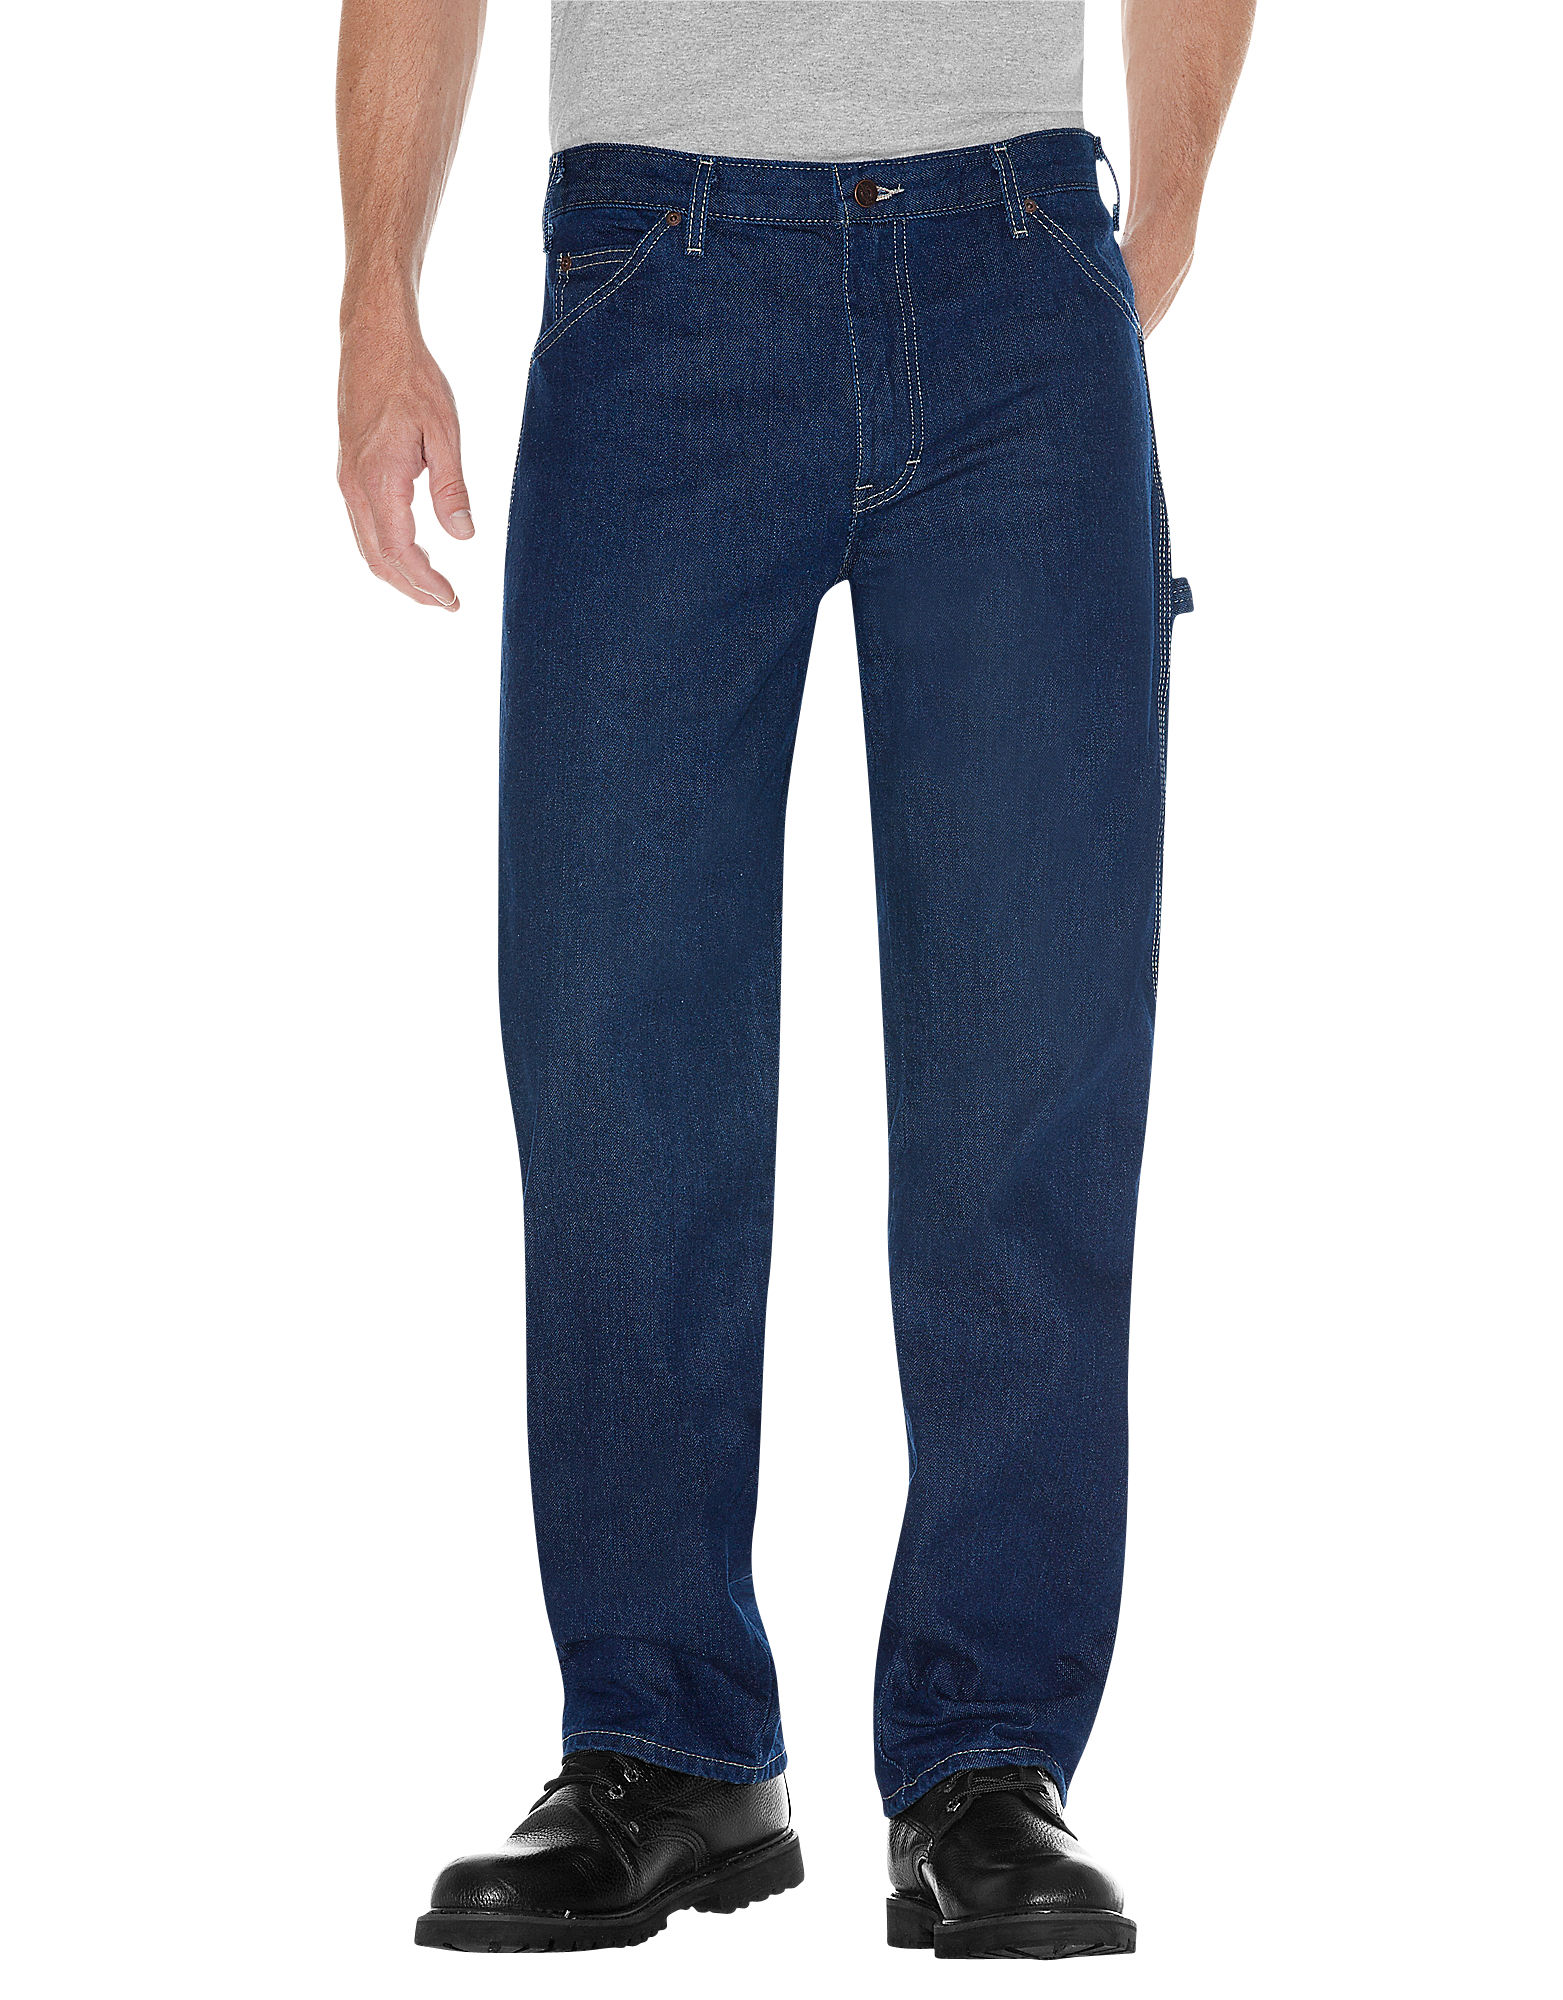 Dickies Mens Relaxed Fit Carpenter Denim Jeans - Stonewashed Indigo Blue